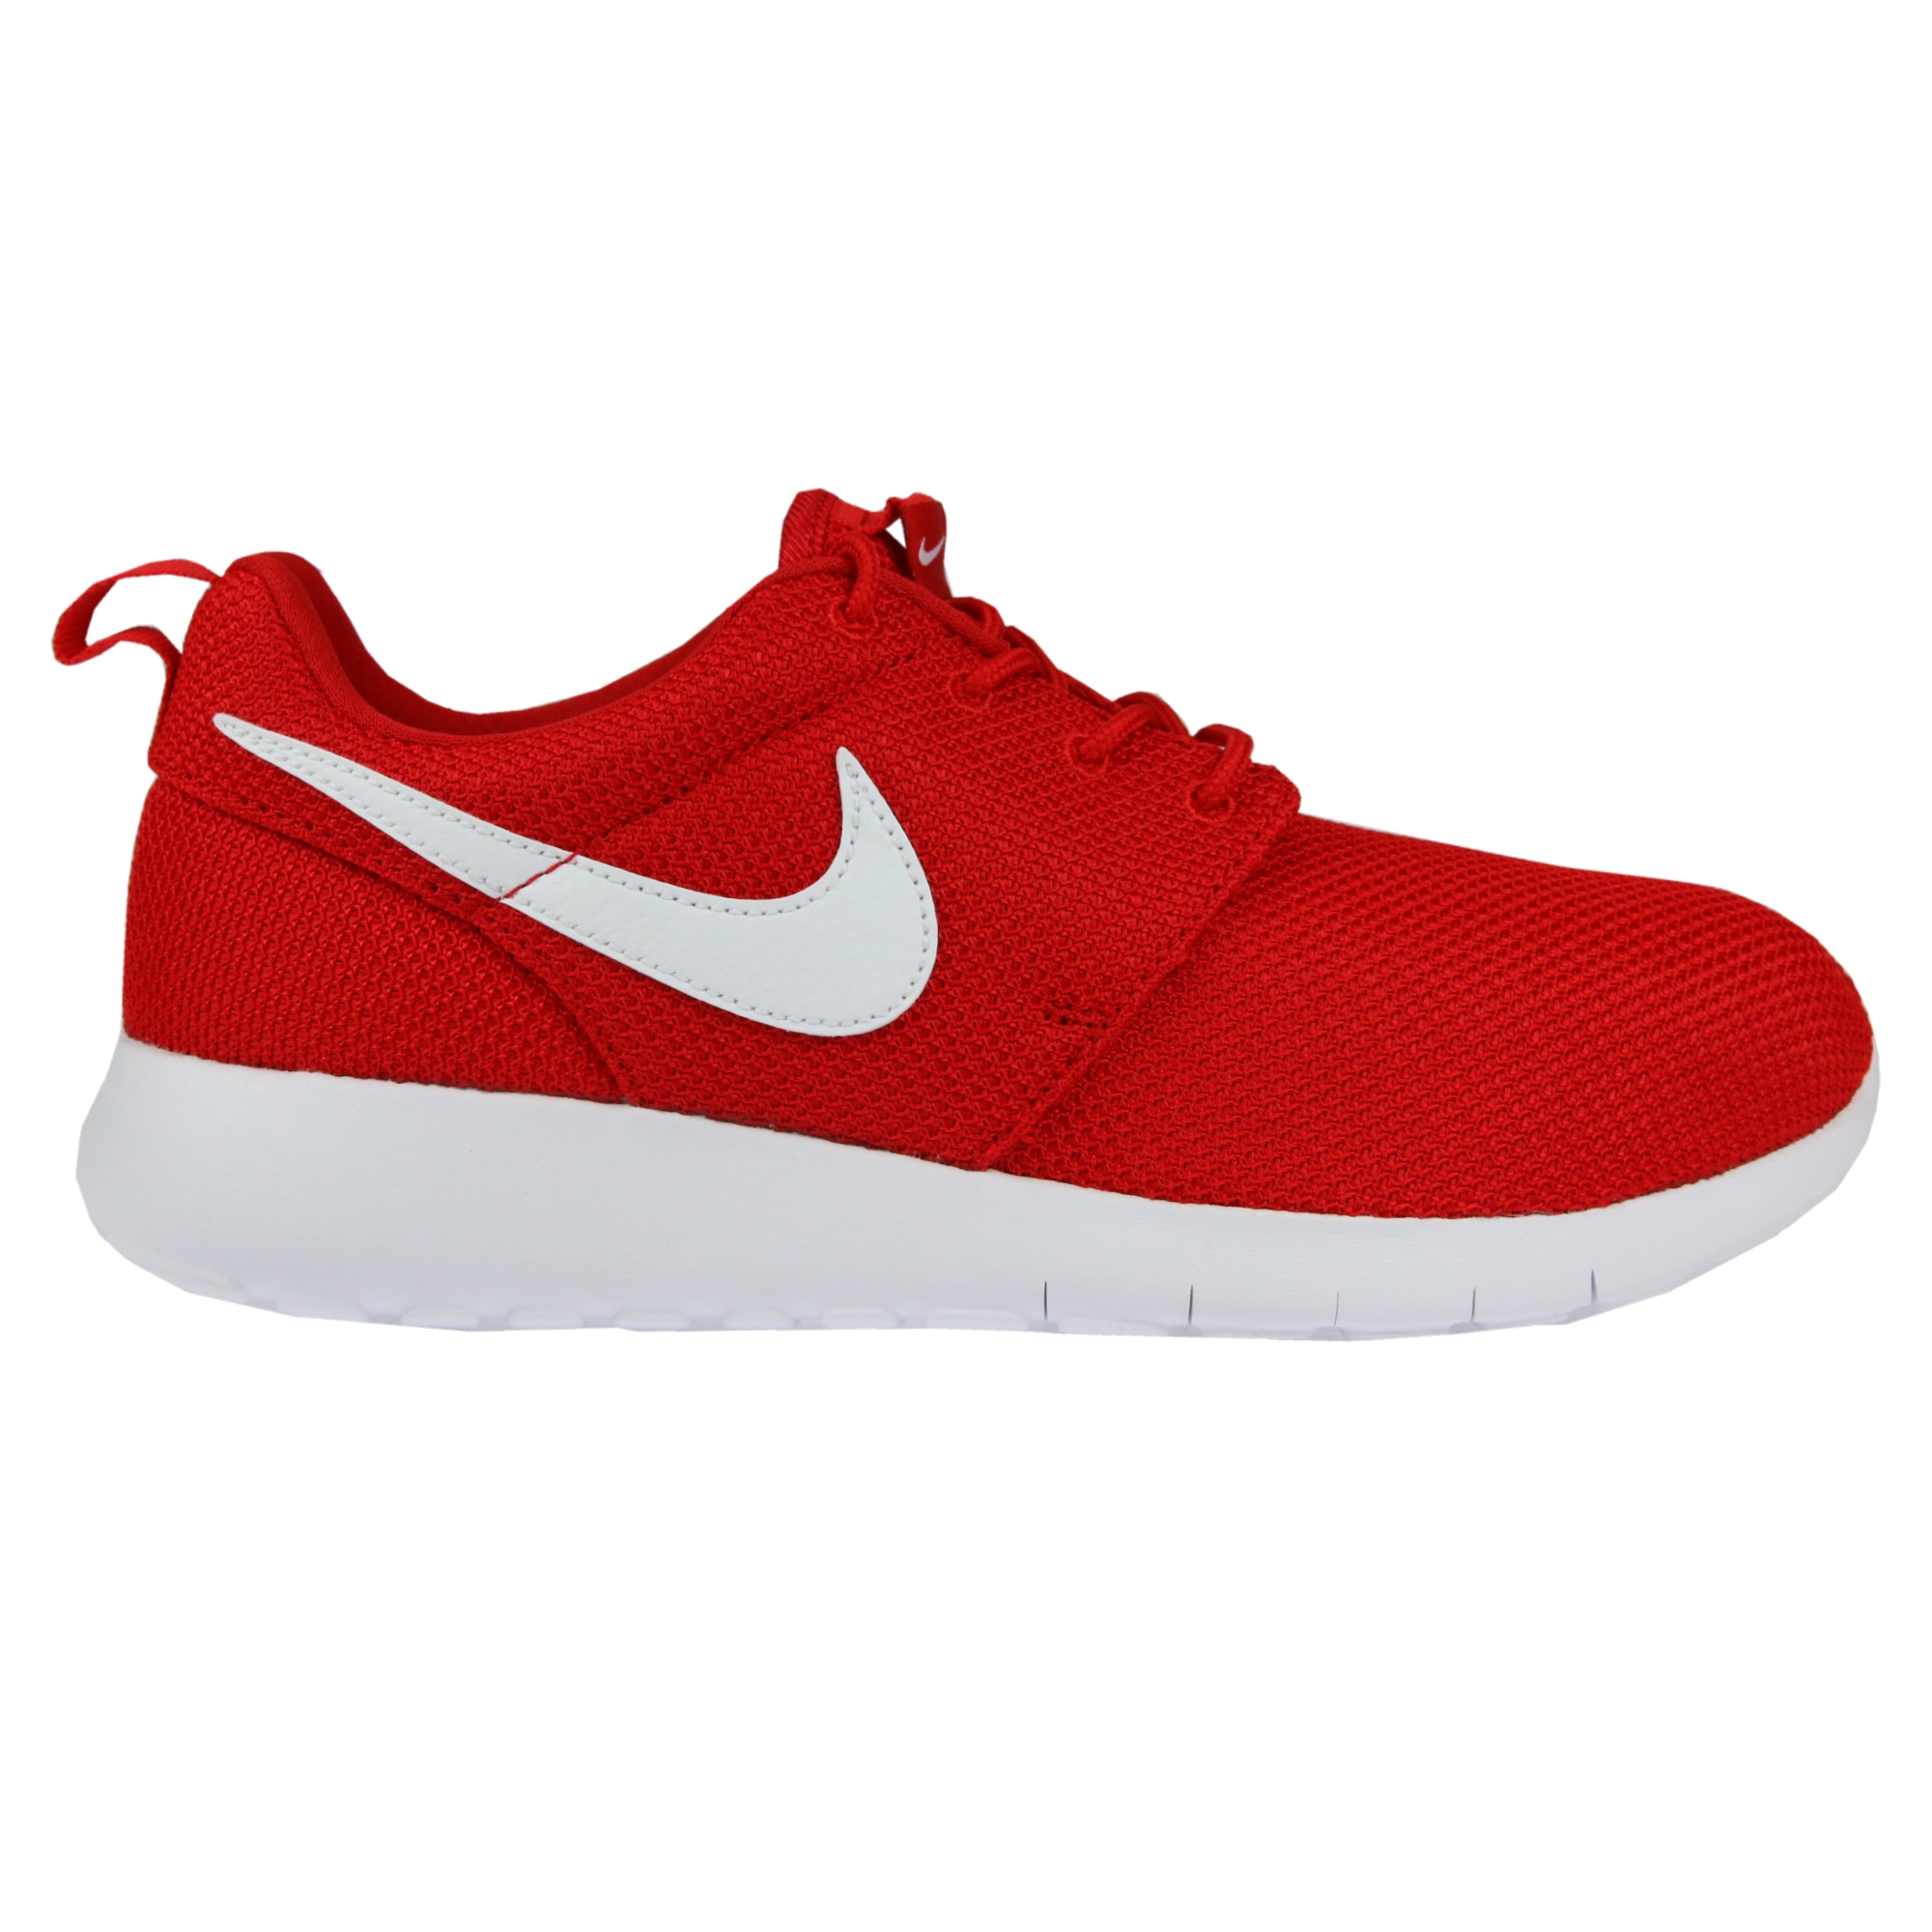 7cade90766b51 Nike Epic React Flyknit Limited